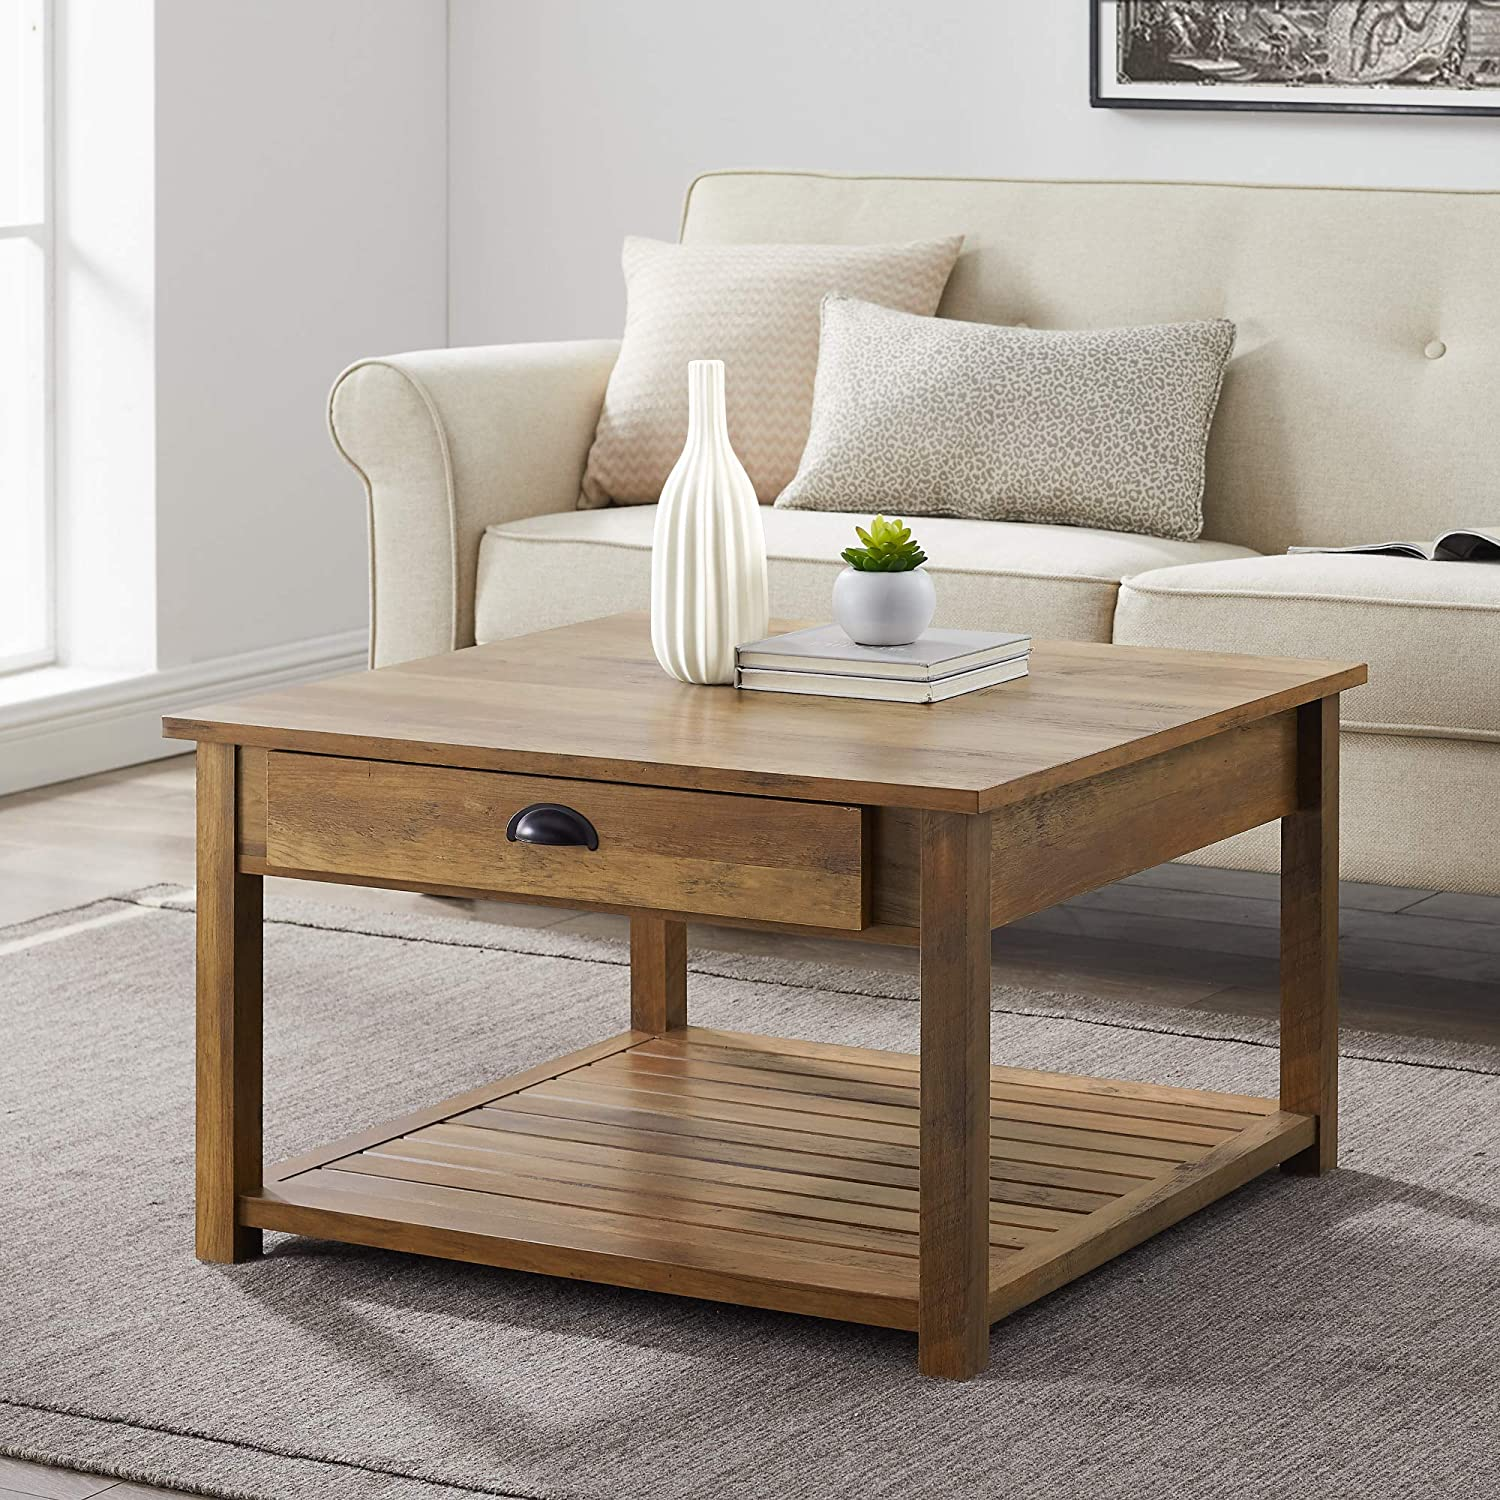 Walker Edison Modern Country Square Coffee Table Living Room Accent Ottoman Storage Shelf, 30 Inch, Reclaimed Barnwood